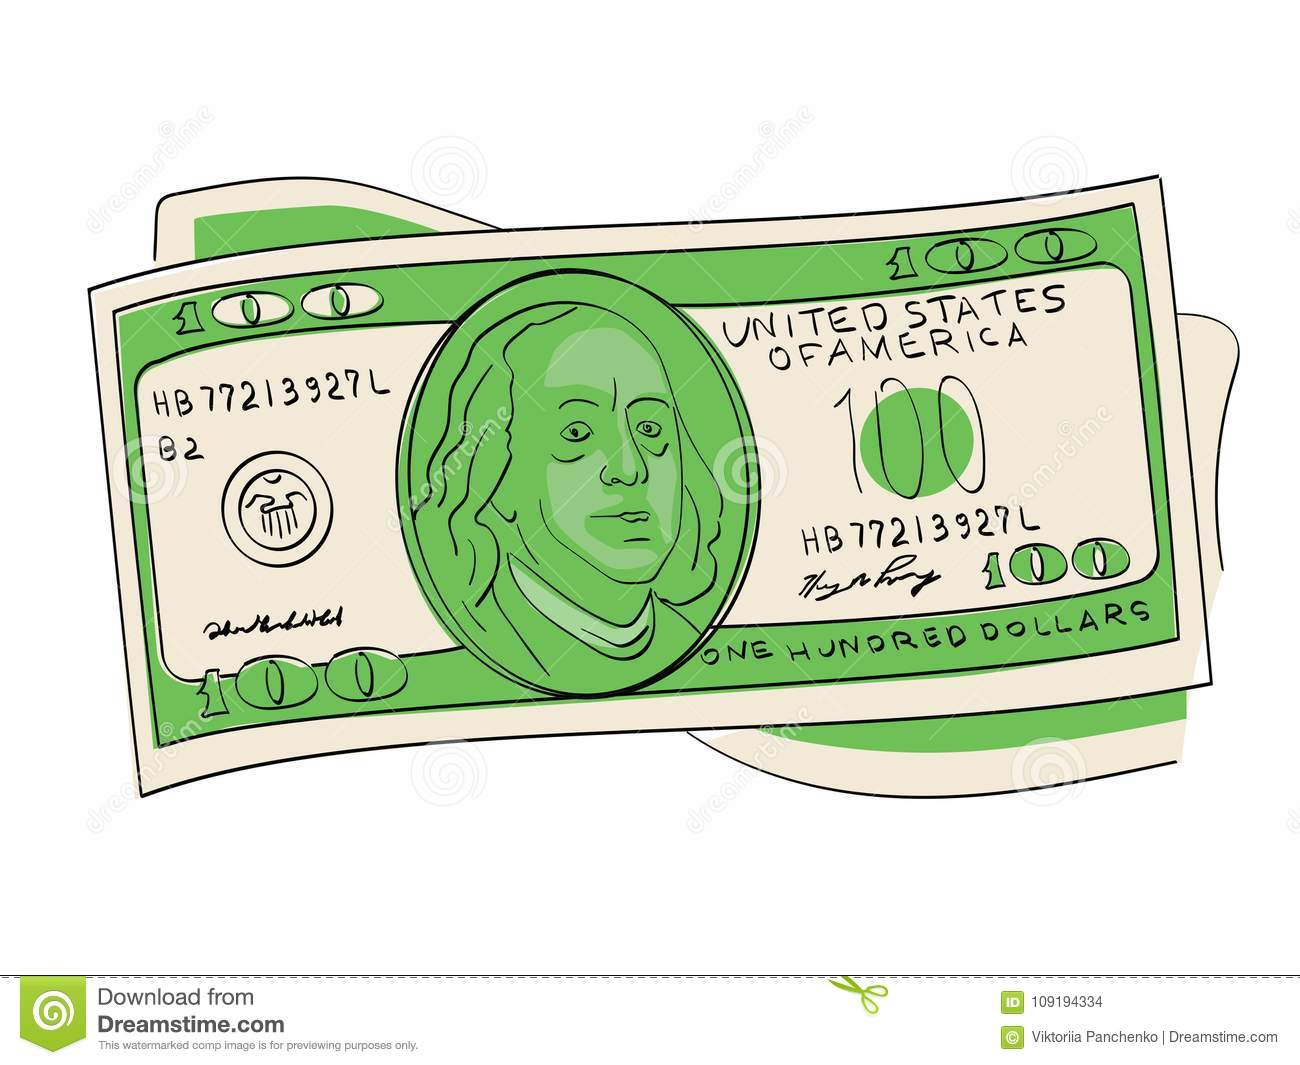 A hundred dollars pile object on a white background. Scientist, publicist and diplomat Benjamin Franklin